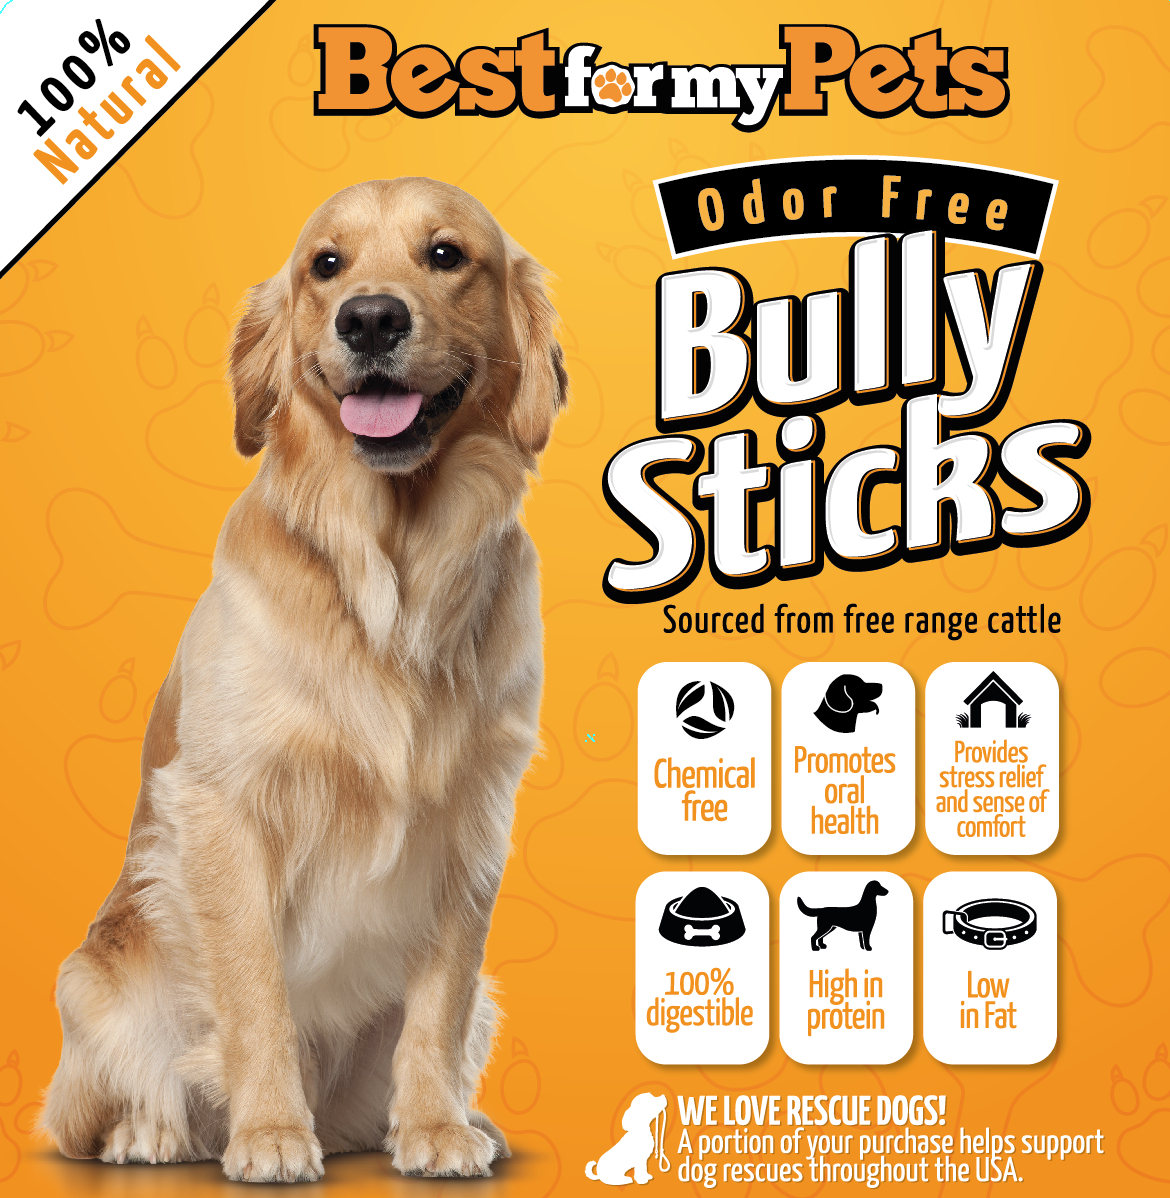 best for my pets odor free bully sticks. Black Bedroom Furniture Sets. Home Design Ideas